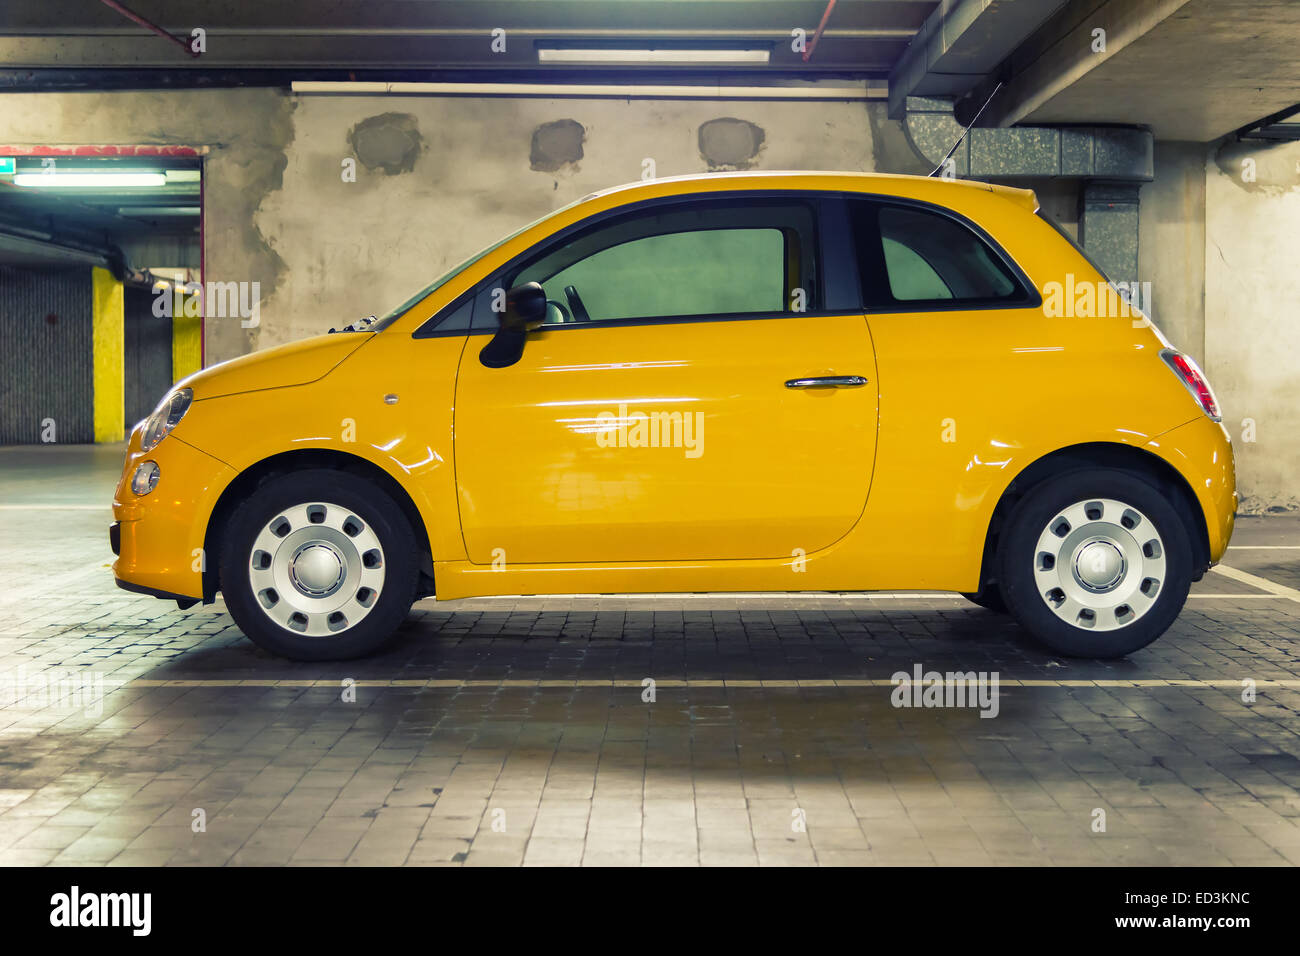 car garage parking underground stockfotos car garage parking underground bilder alamy. Black Bedroom Furniture Sets. Home Design Ideas